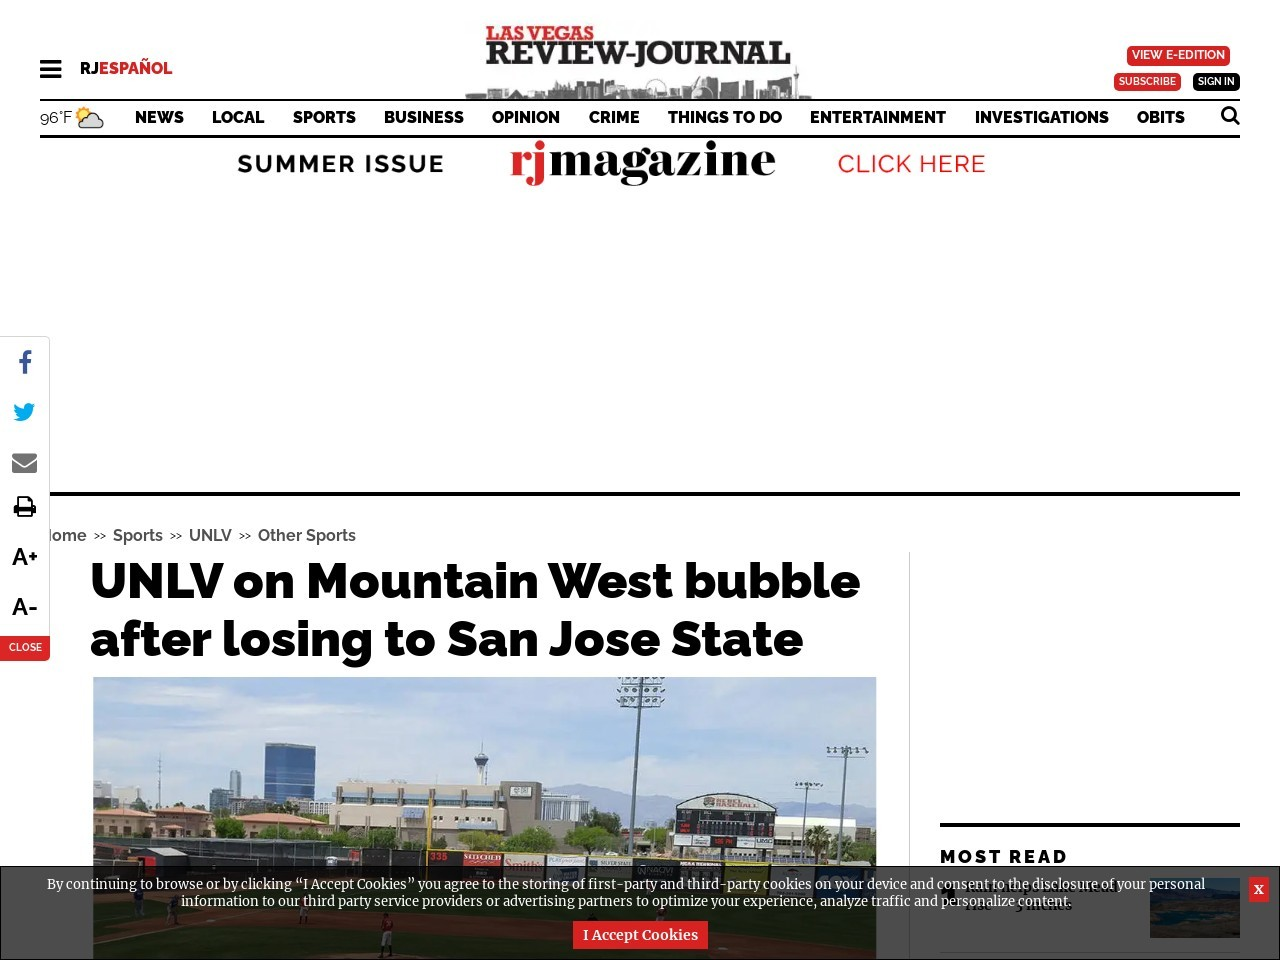 UNLV on Mountain West bubble after losing to San Jose State